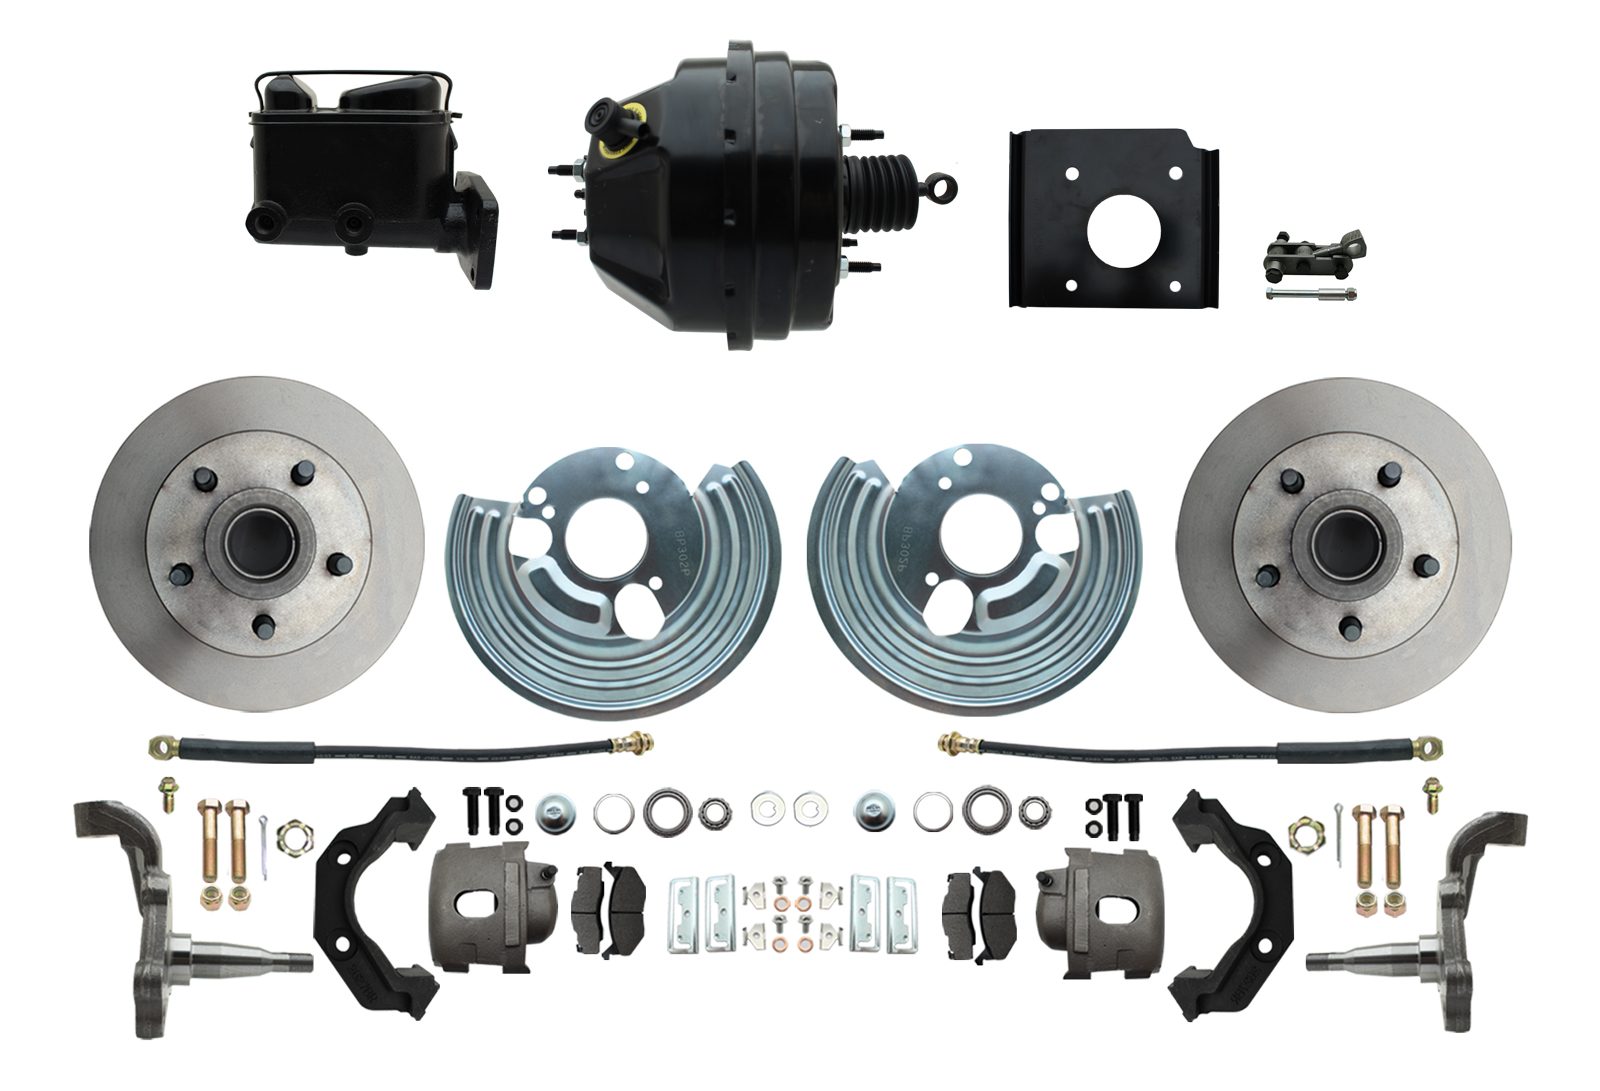 1966-70 B Body 71-74 E Body O.E.M. Style Disc Brake Kit & Booster Conversion Kit W/ Casting Numbers